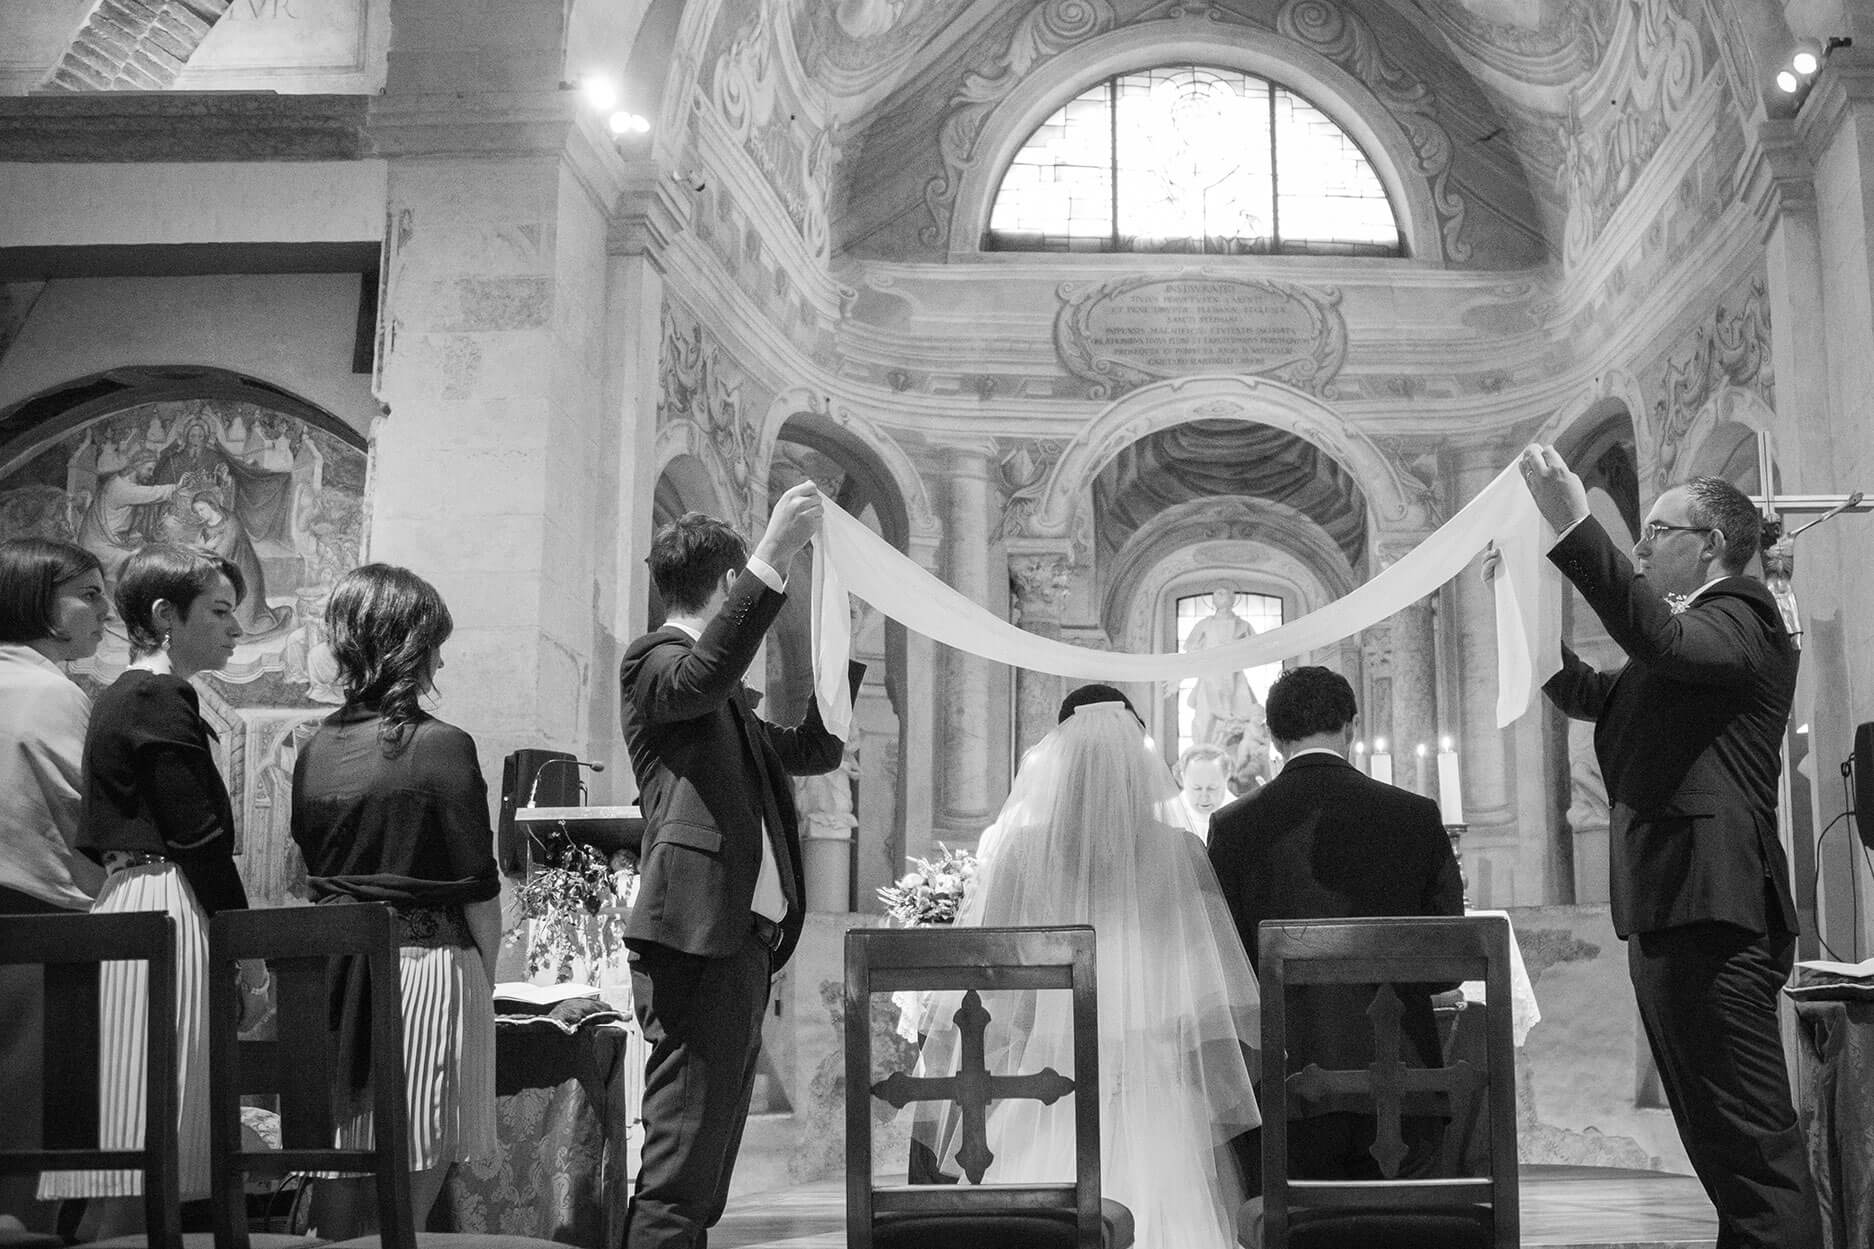 Francesca-Ferrati-wedding-photographer-Verona-Elena-Tommaso12